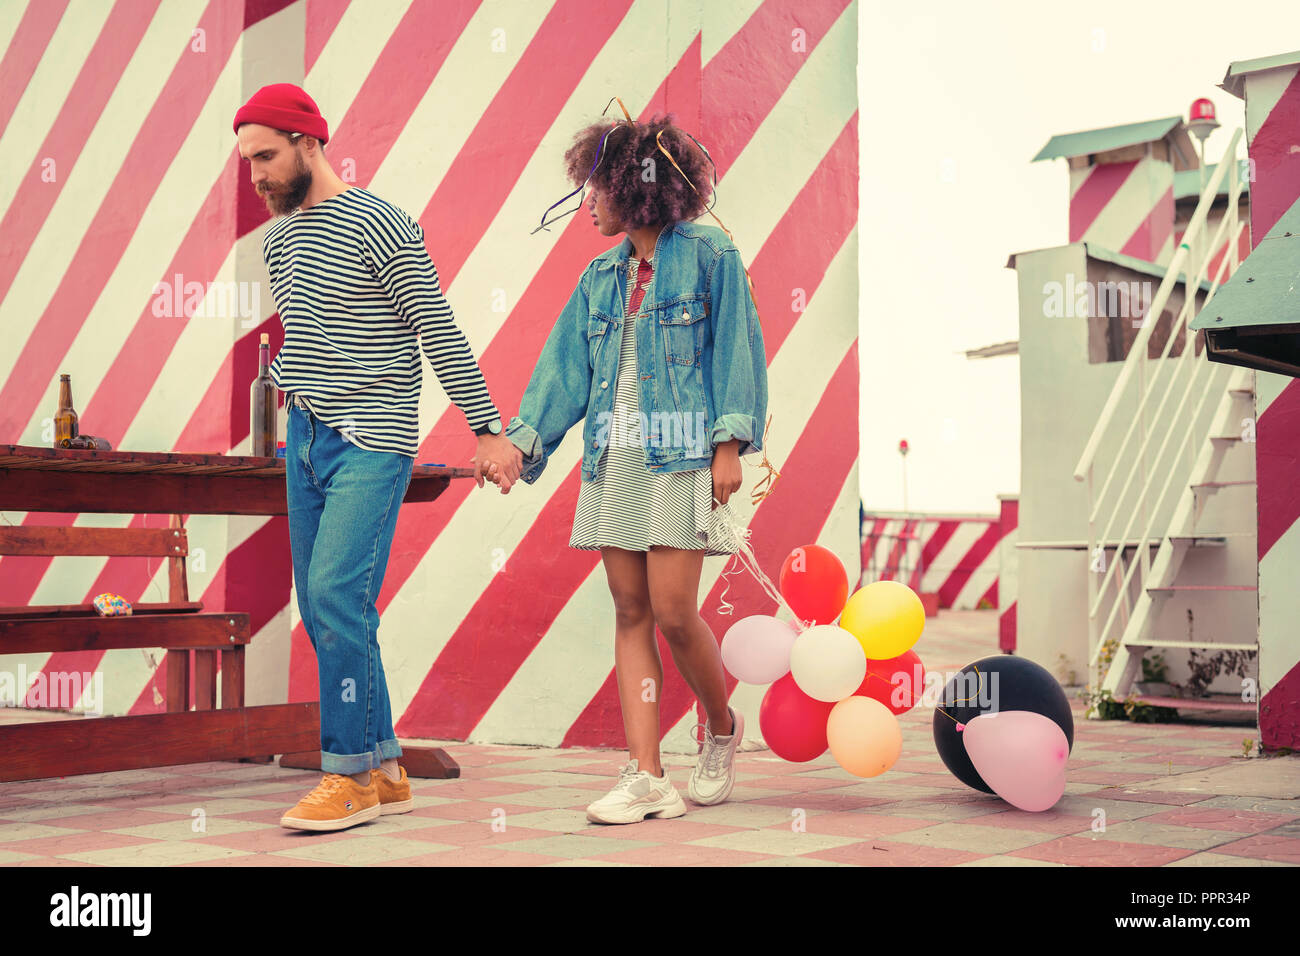 Exhausted couple walking on the roof after night party and looking sleepy - Stock Image